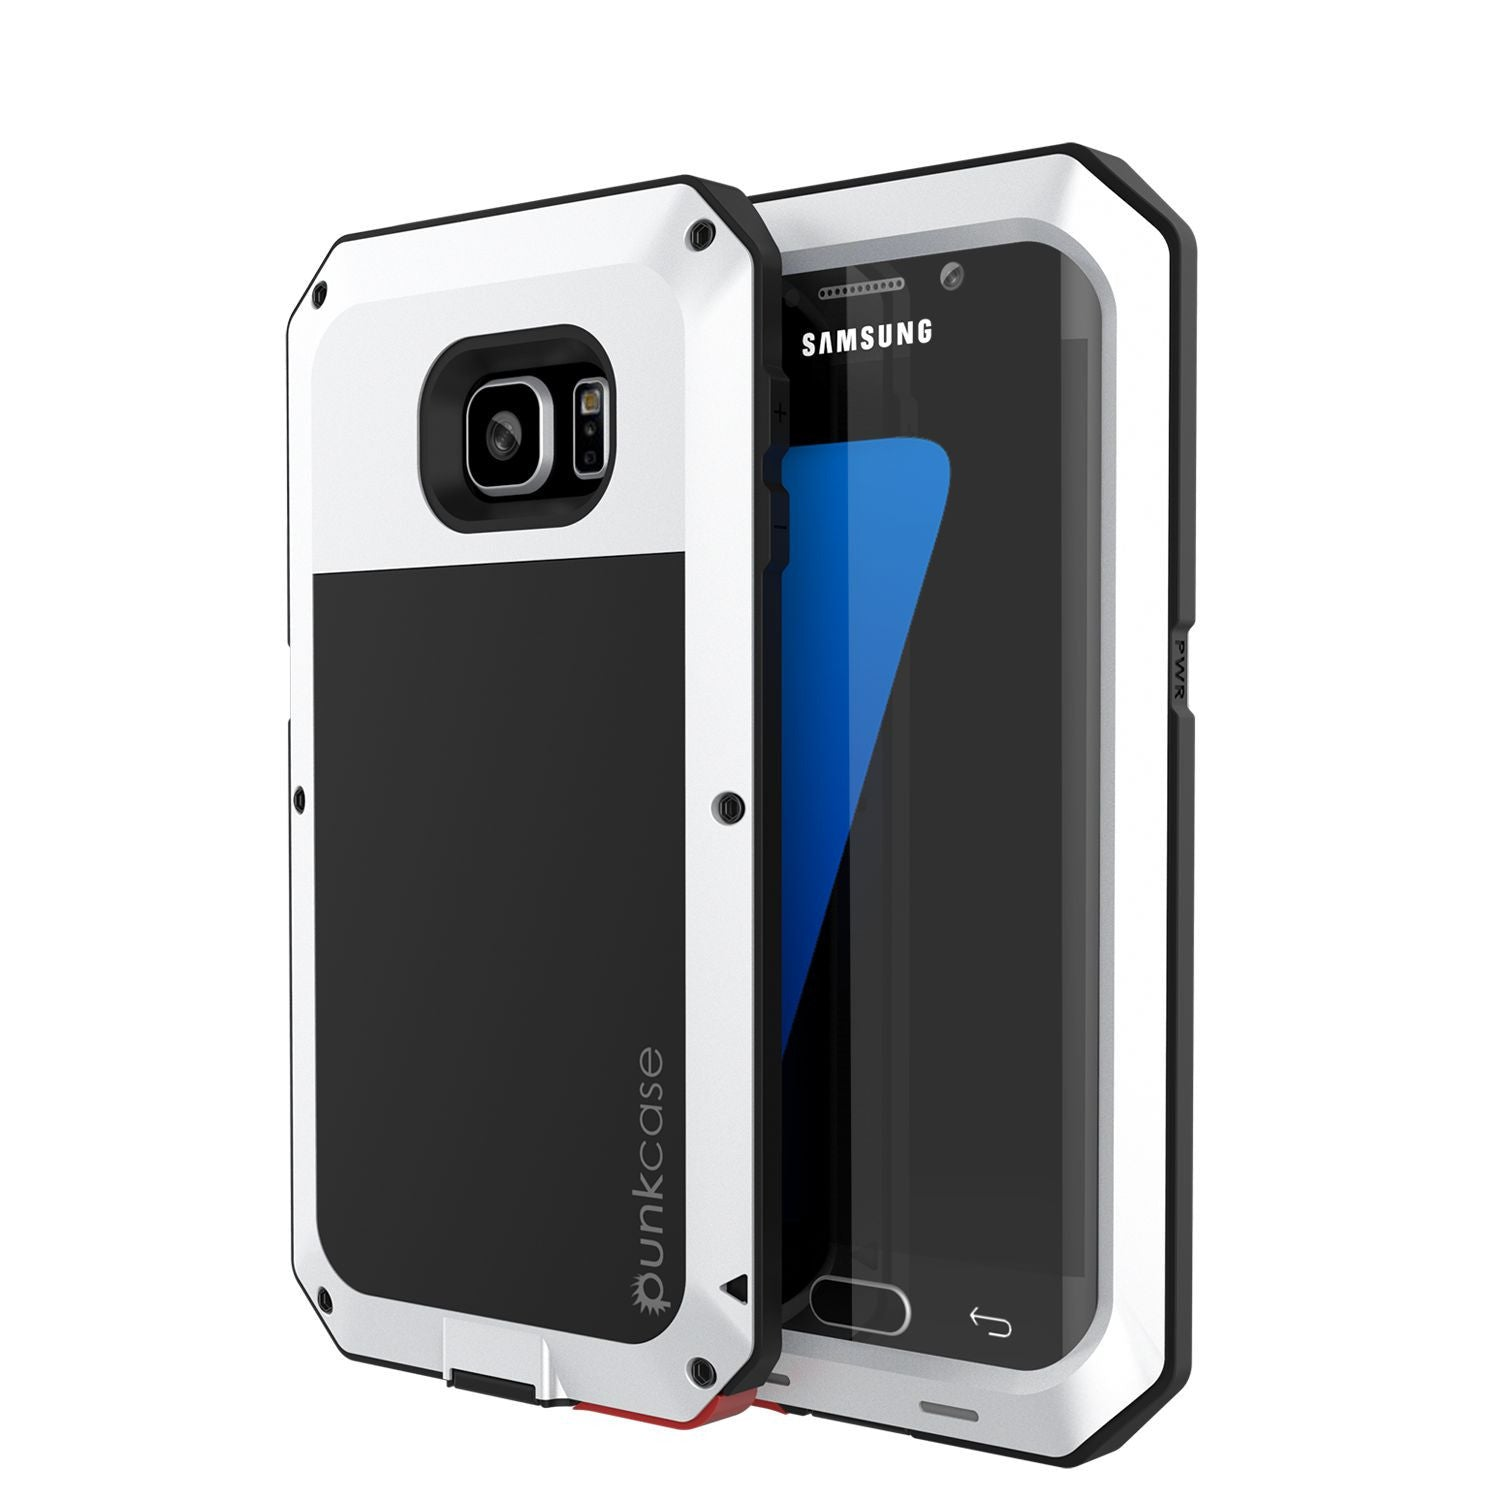 PUNKCASE - Metallic Series Shockproof Armor Case for Samsung S7 Edge | White